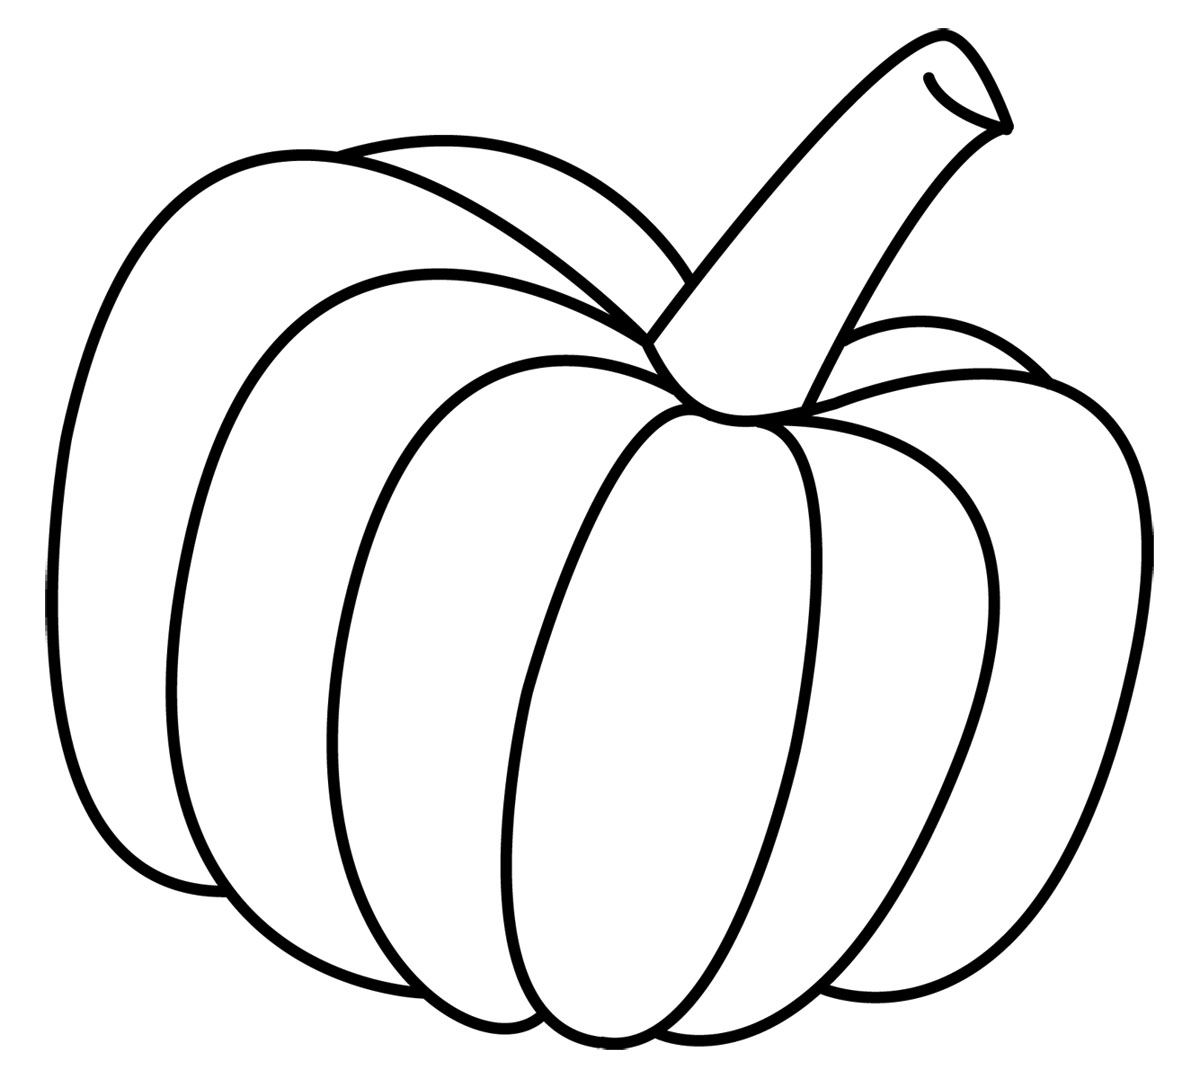 Simple Line Drawing Clip Art : Simple line art clipart best